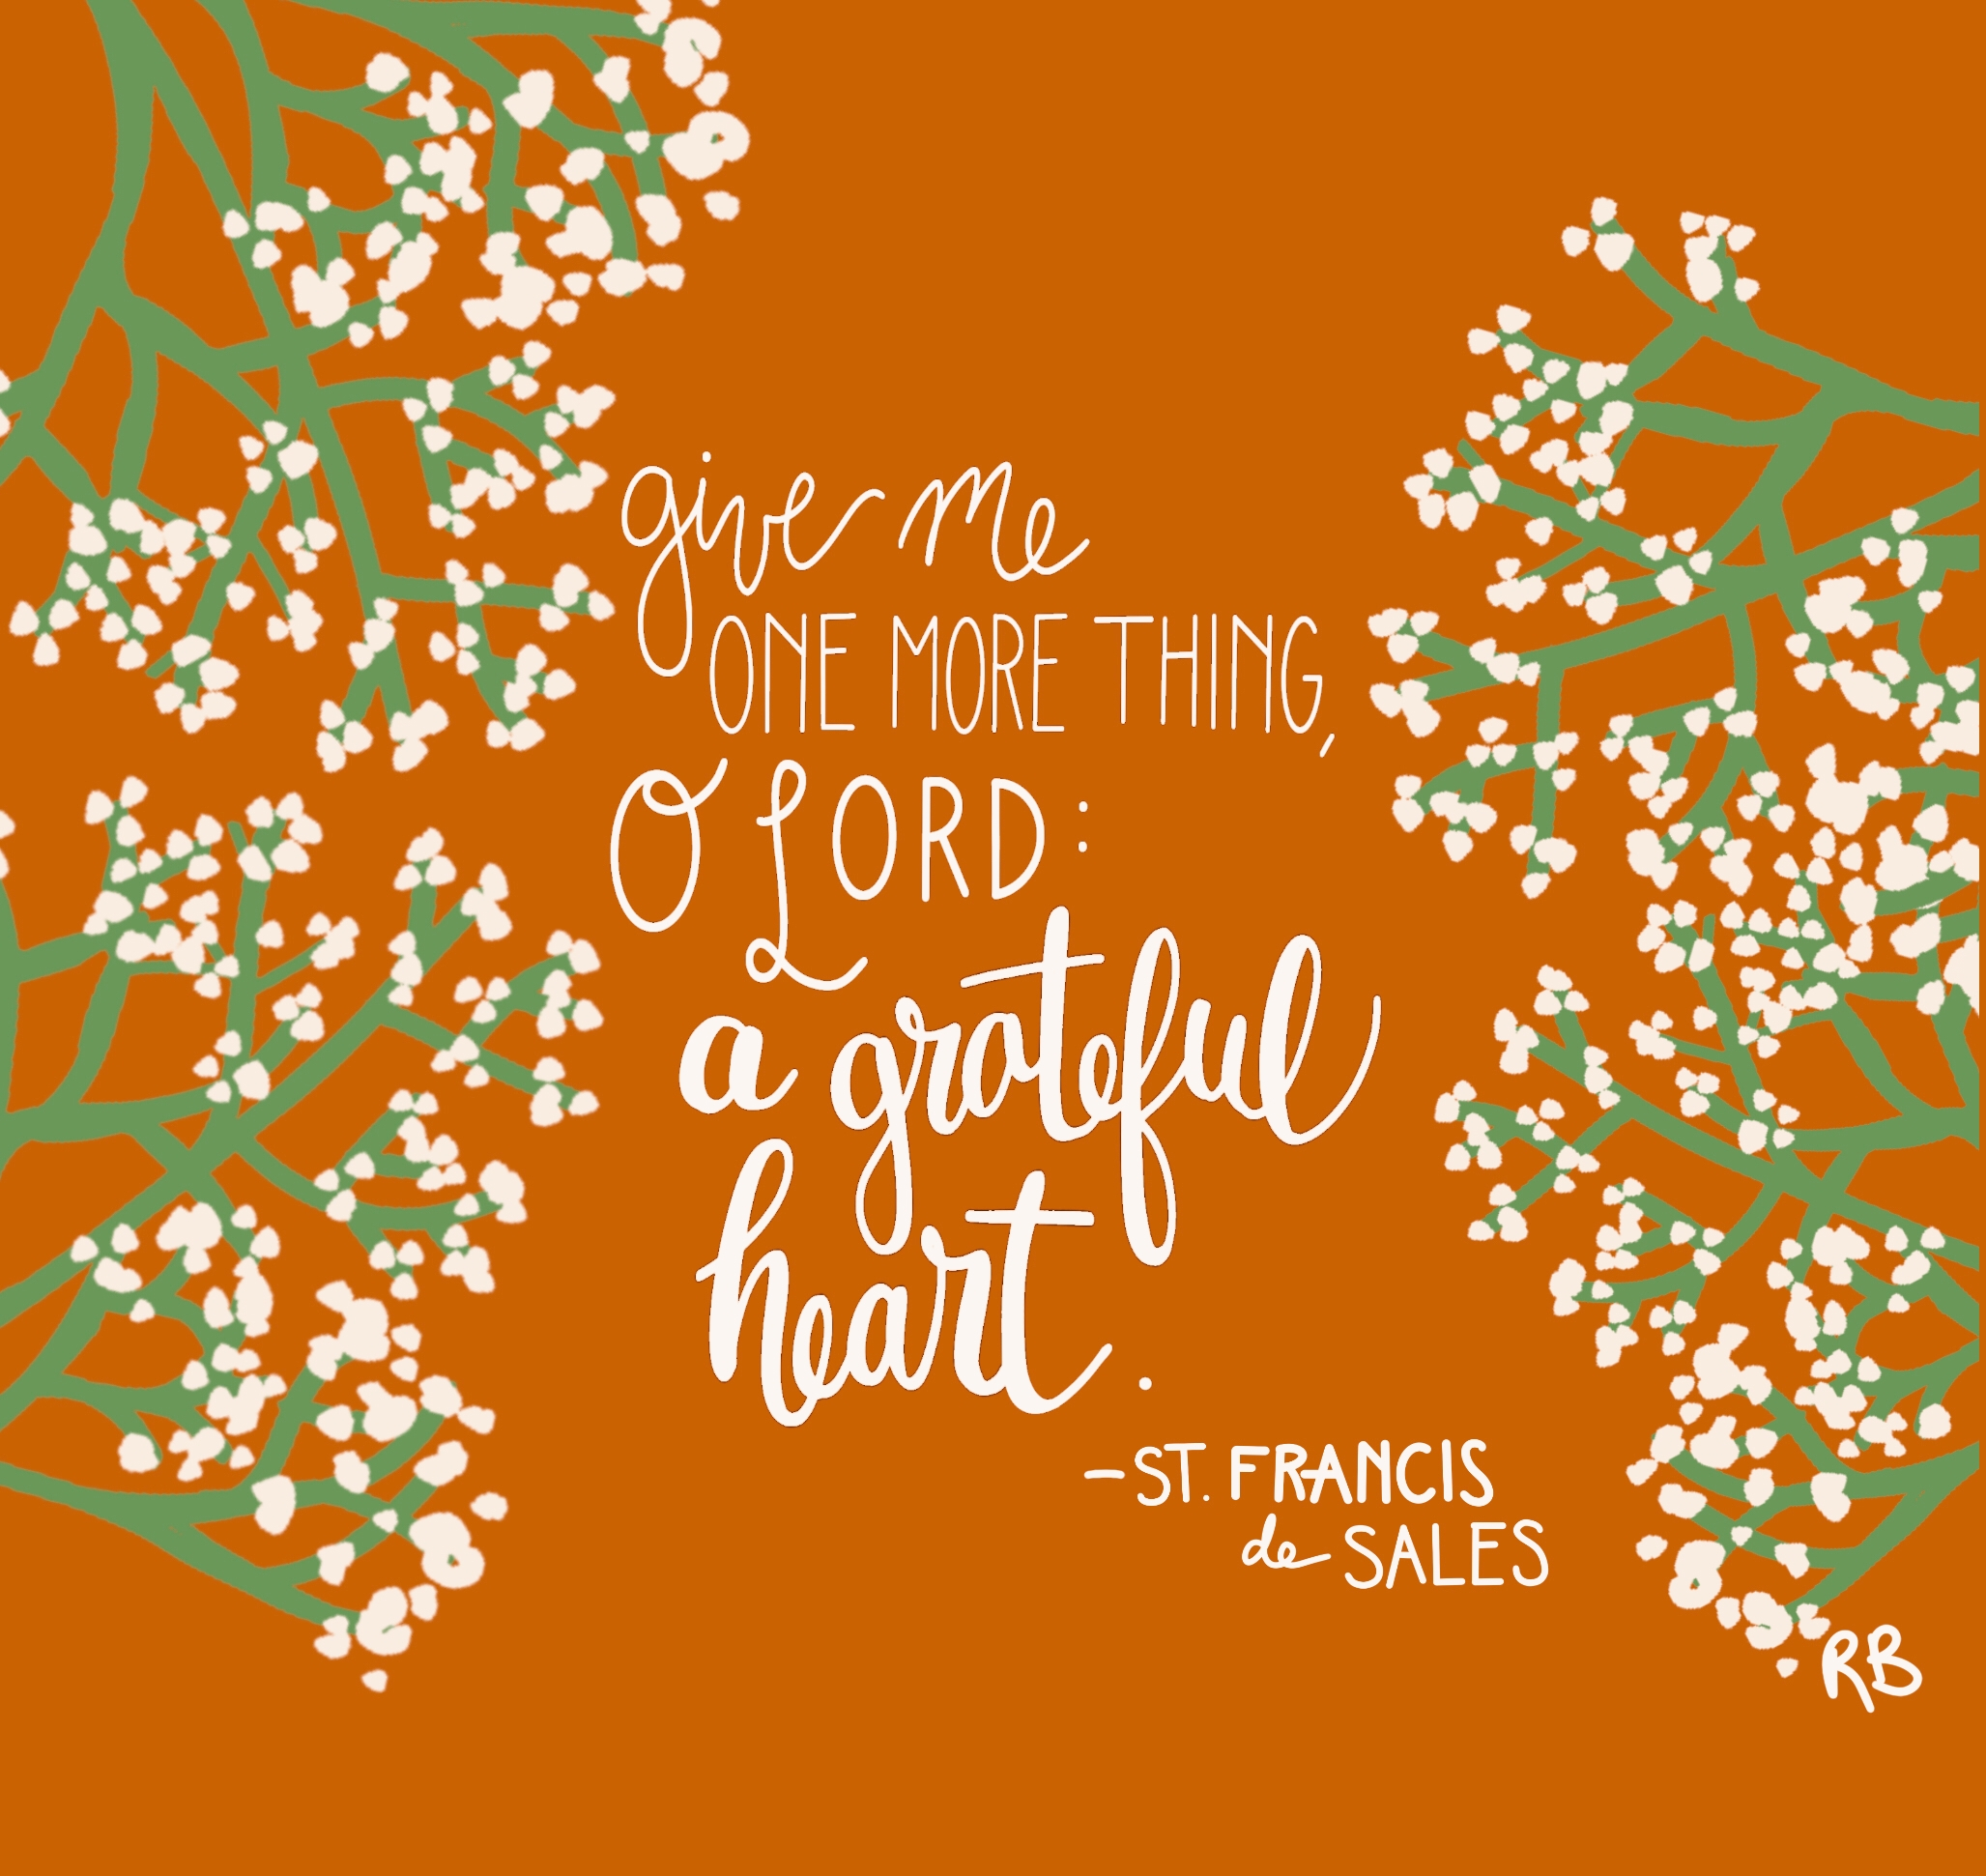 Give me one more thing, O Lord: a grateful heart